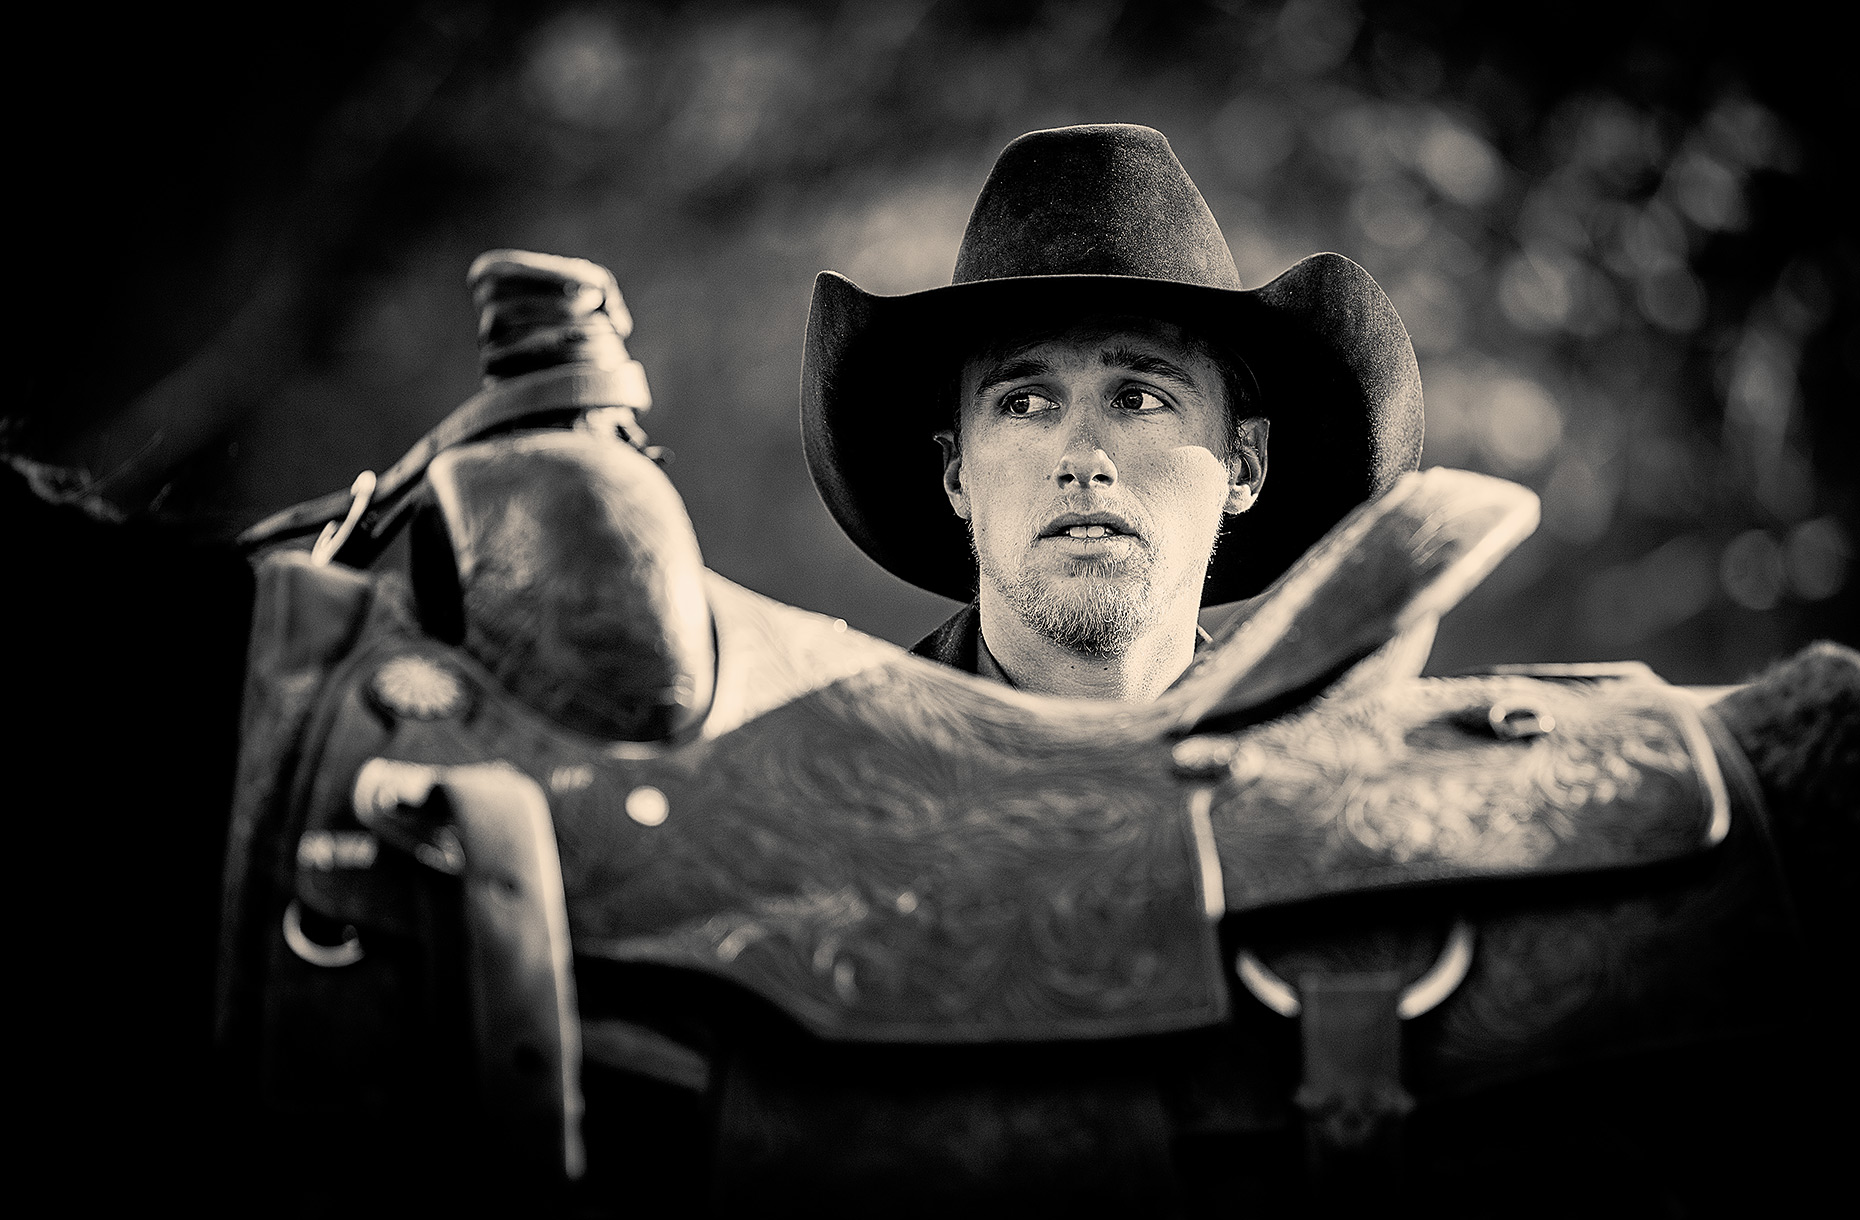 Cowboy Photography in the Midwest